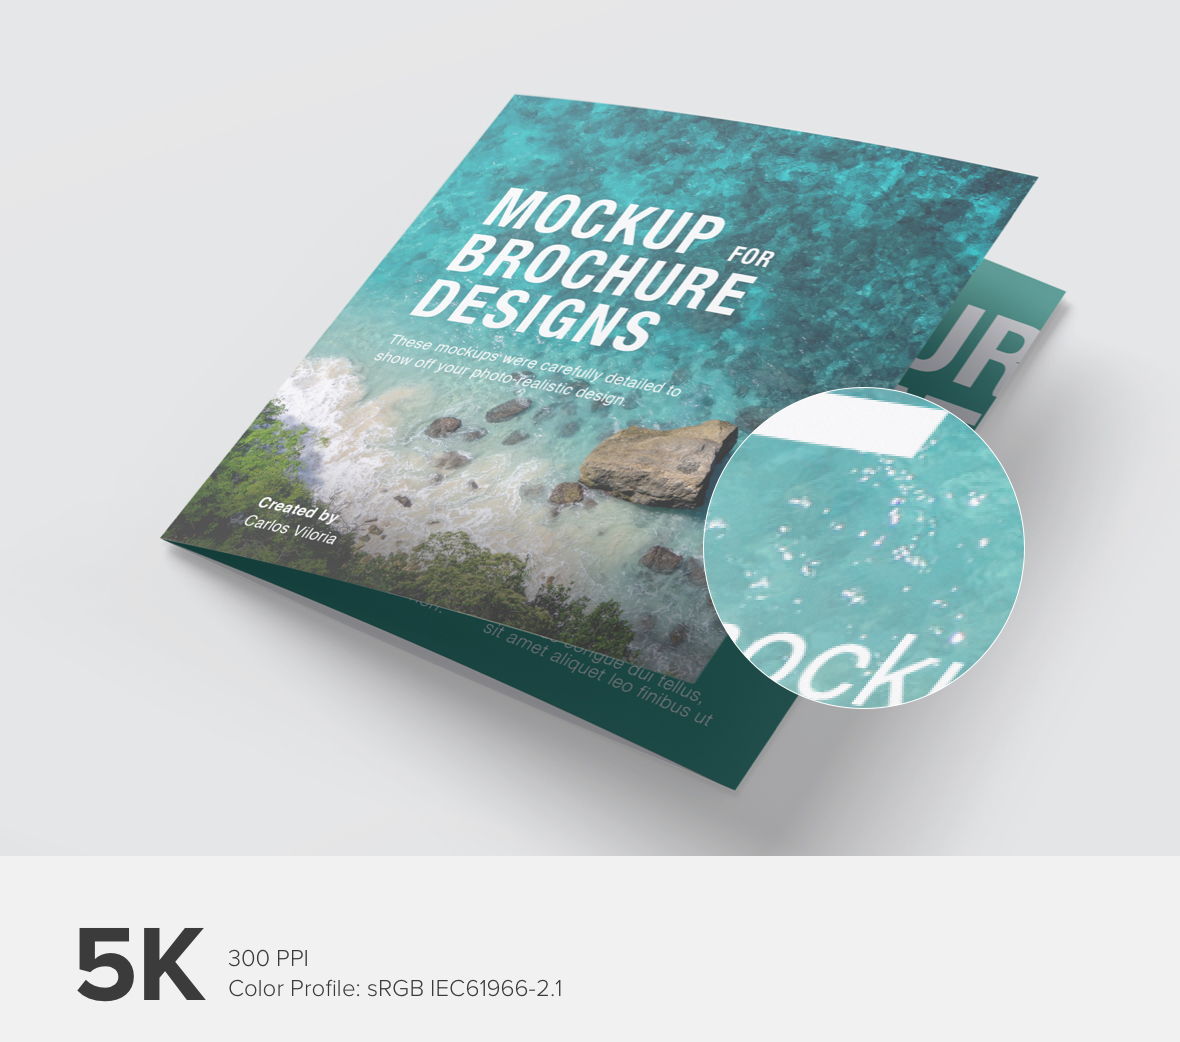 Square Trifold Brochure Cover Mockup - 5K High Resolution